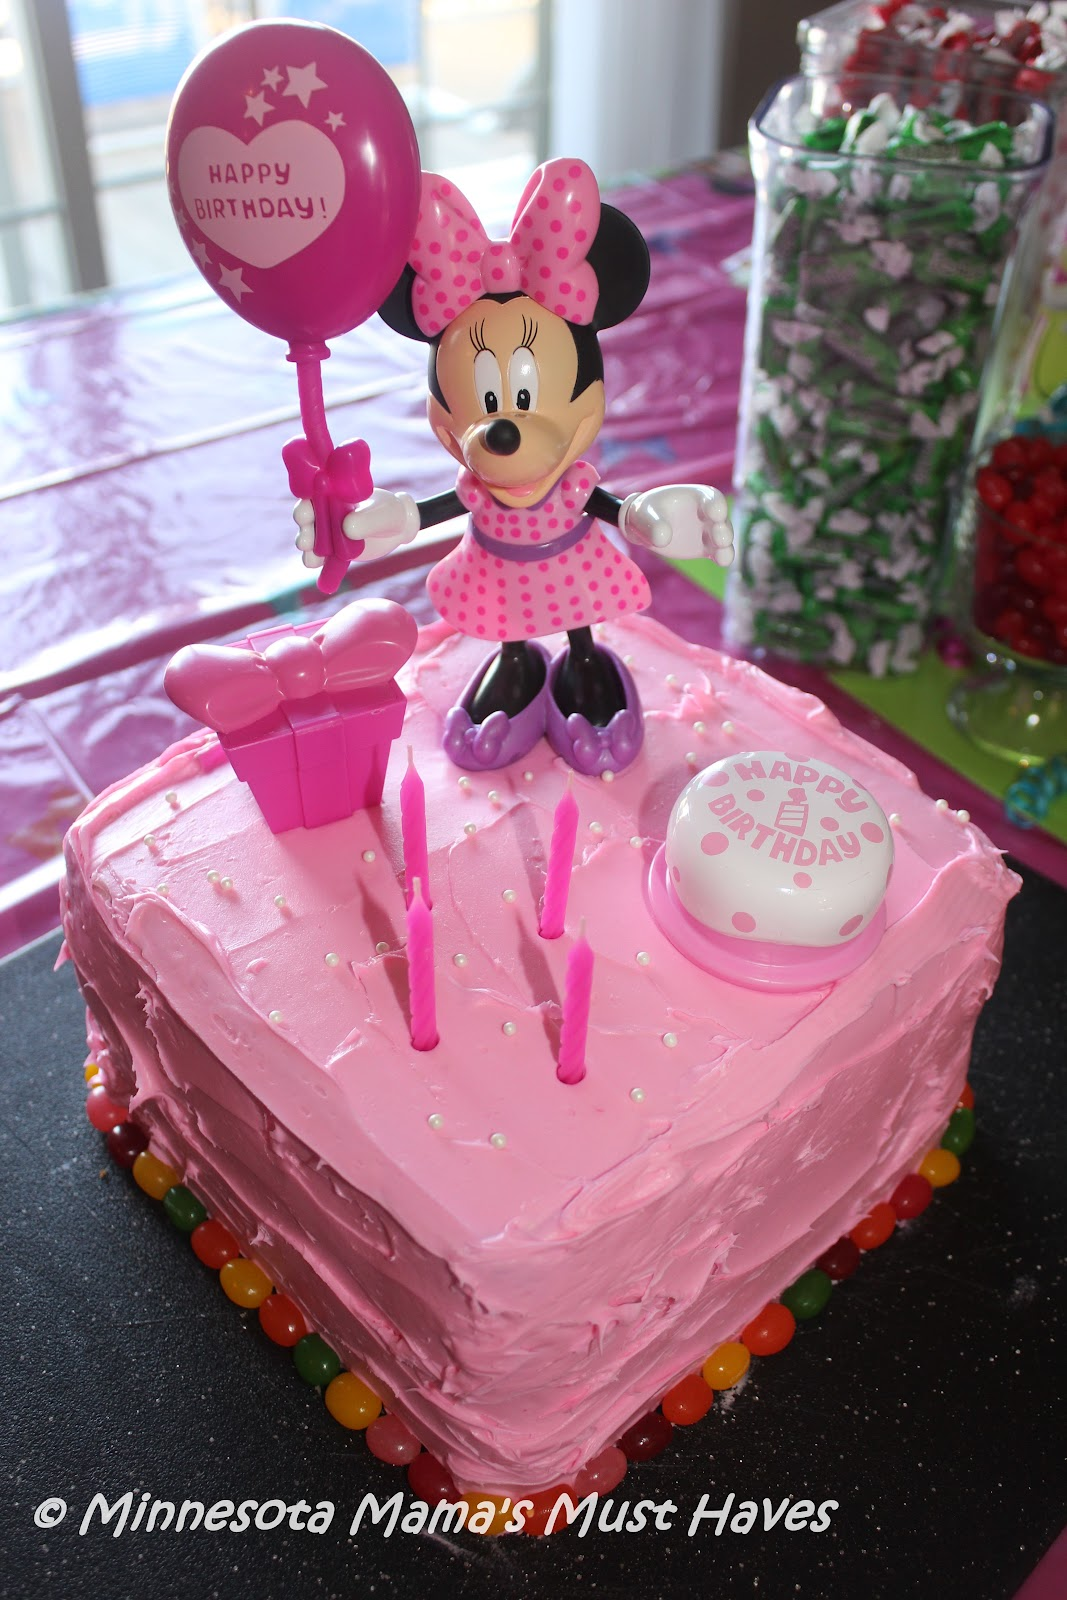 Sensational Minnie Mouse Birthday Party Danika Is Now A Whopping 4 Years Old Funny Birthday Cards Online Alyptdamsfinfo